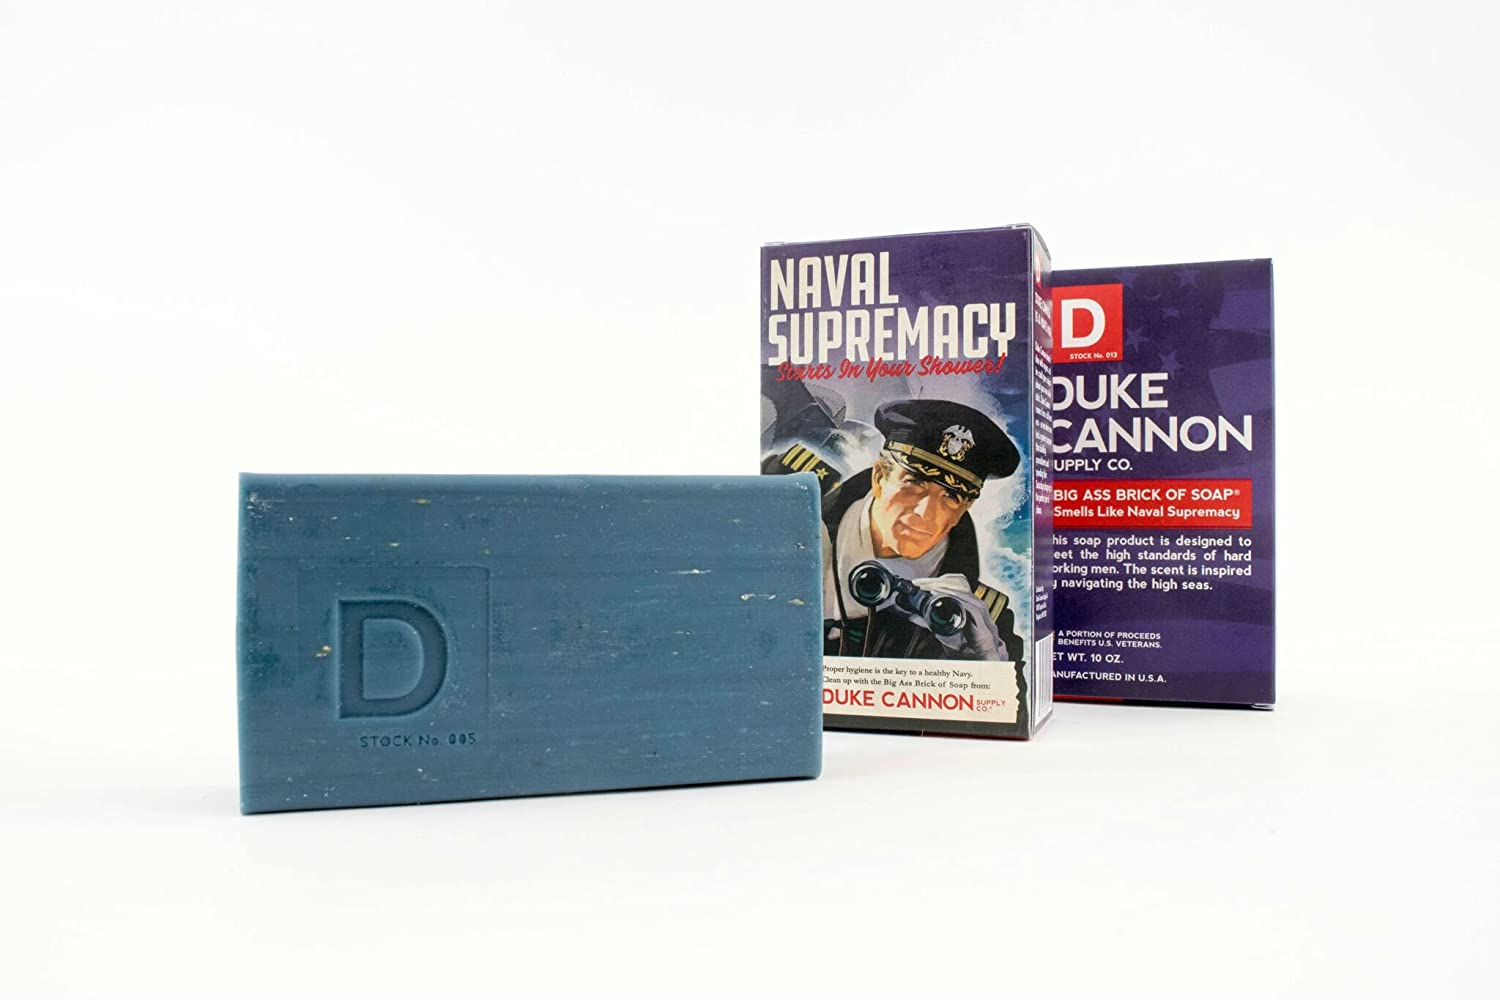 Duke Cannon Limited Edition WWII Era Big Brick of Soap for Men, 10oz – Naval Supremacy 3 Pack